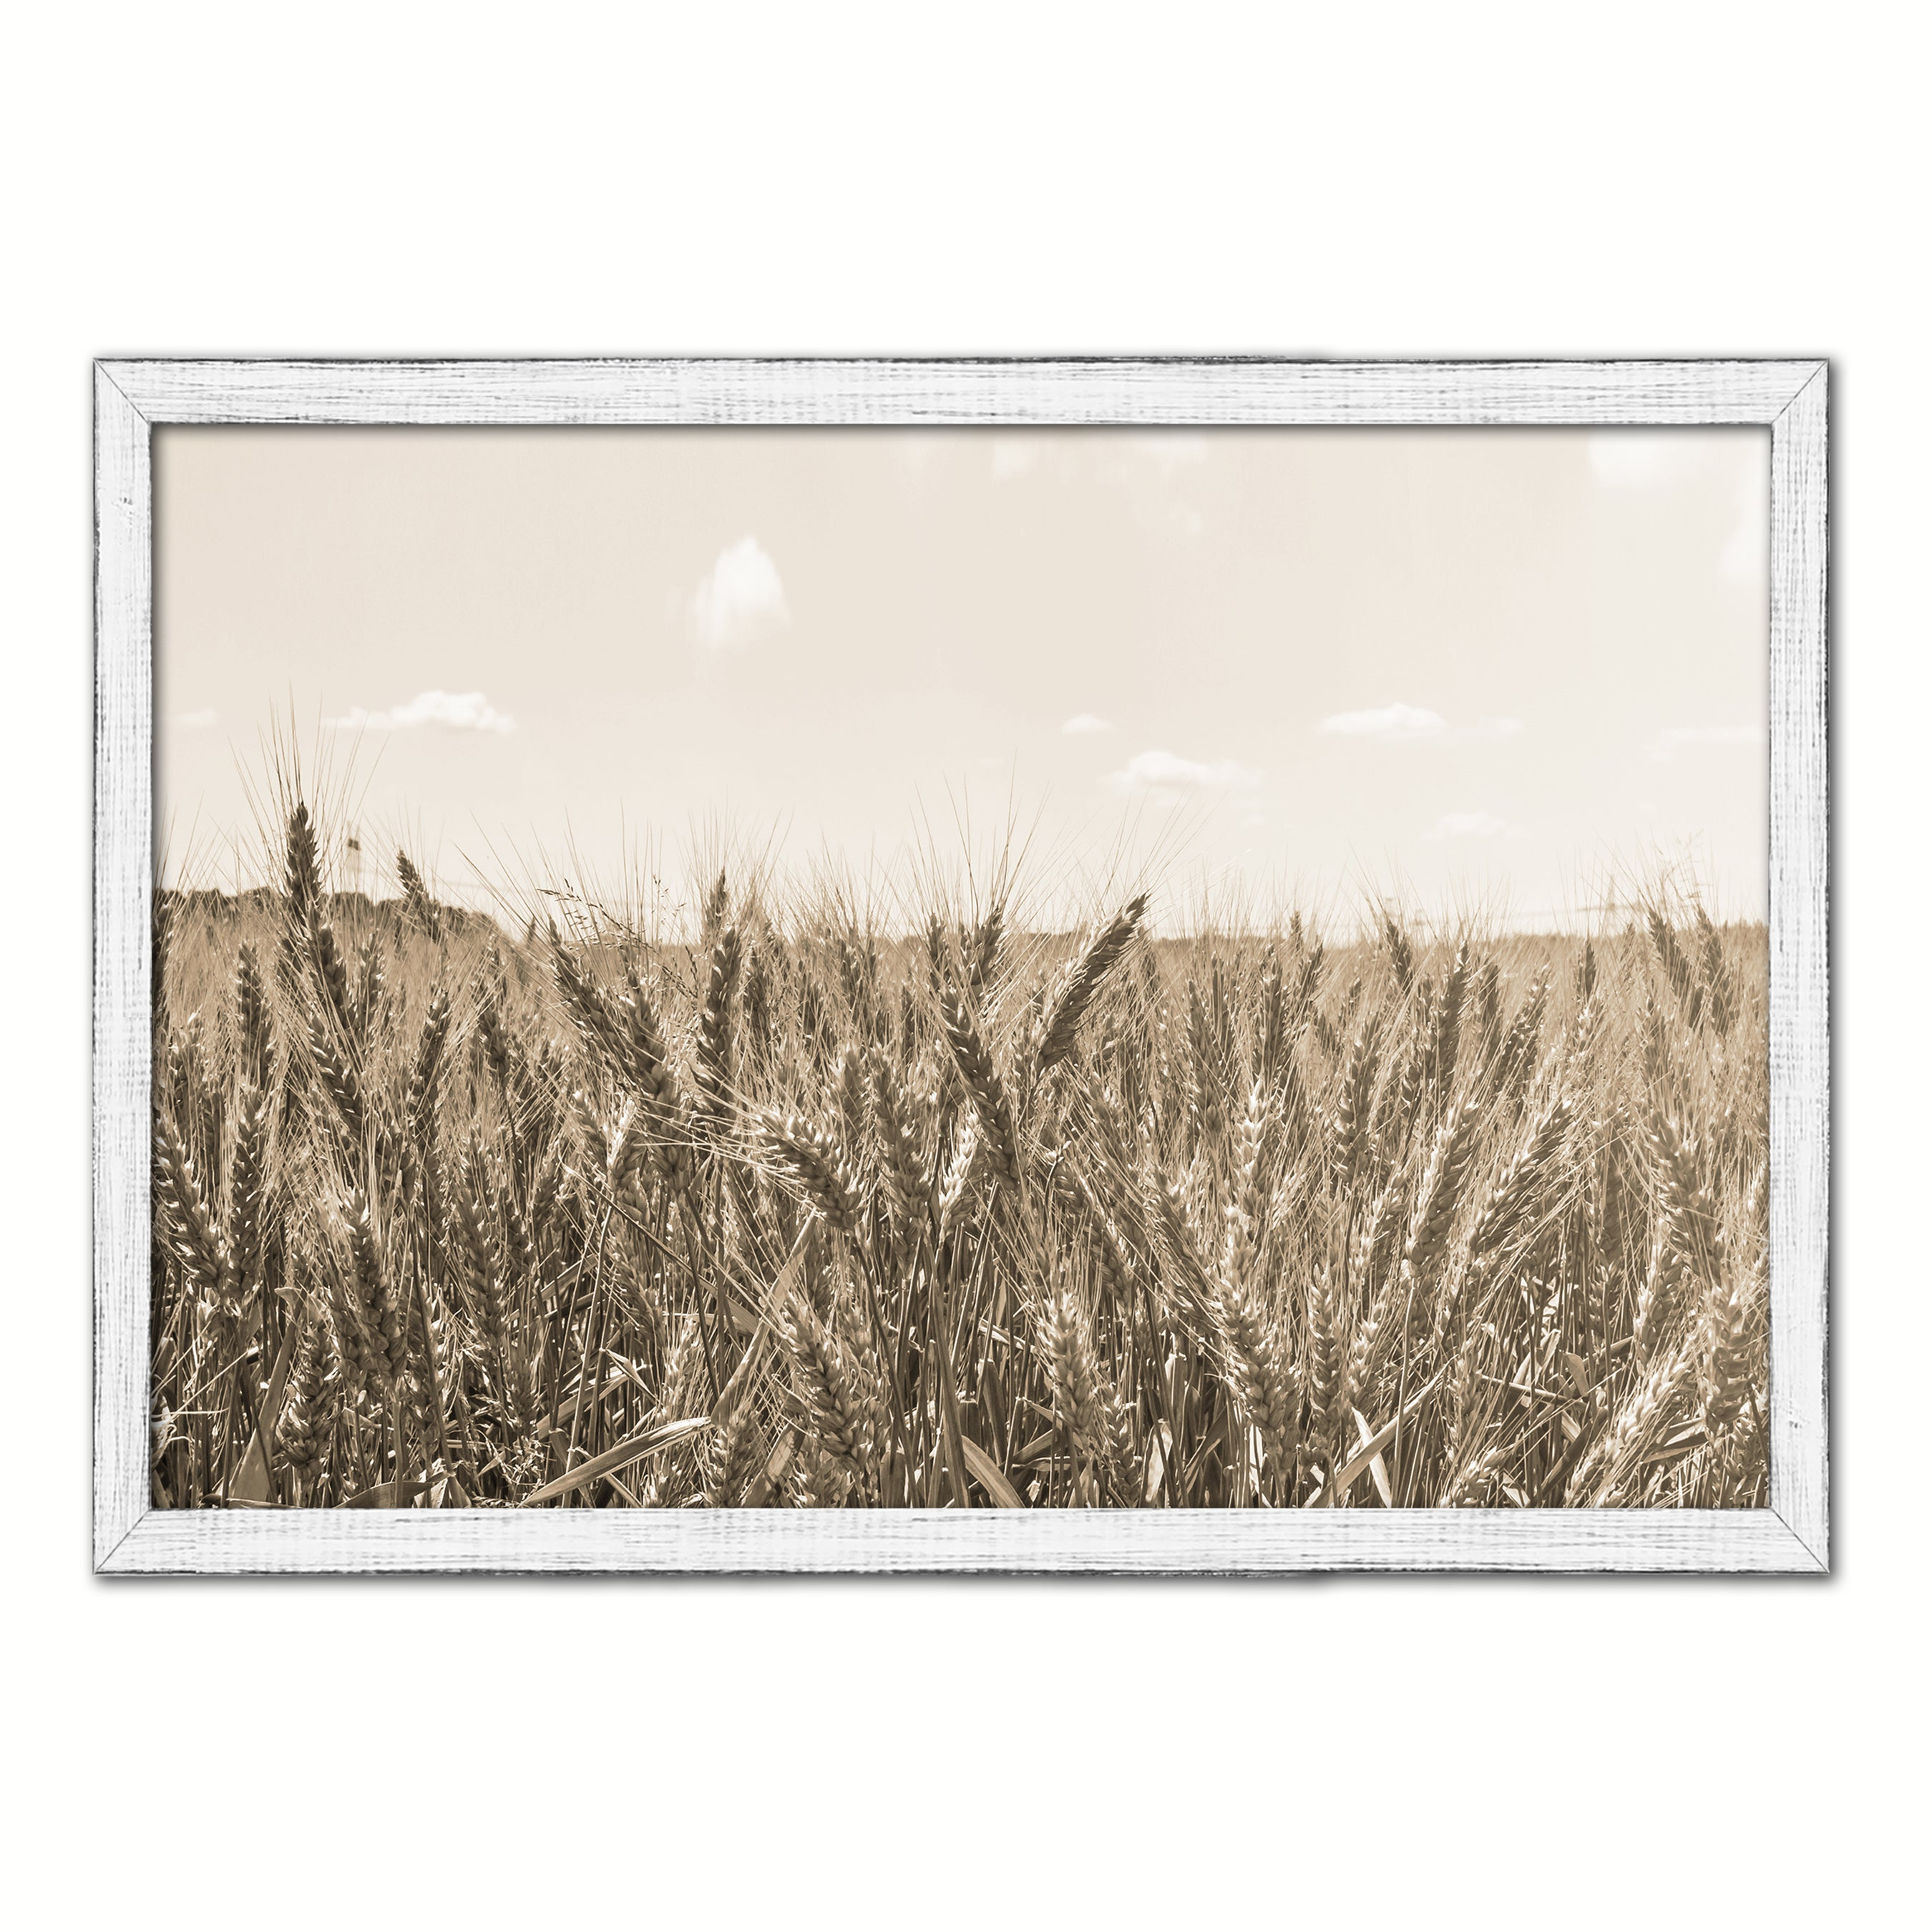 Wheat ears paddy full of grain, on the field Sepia Landscape decor, National Park, Sightseeing, Attractions, Black Frame